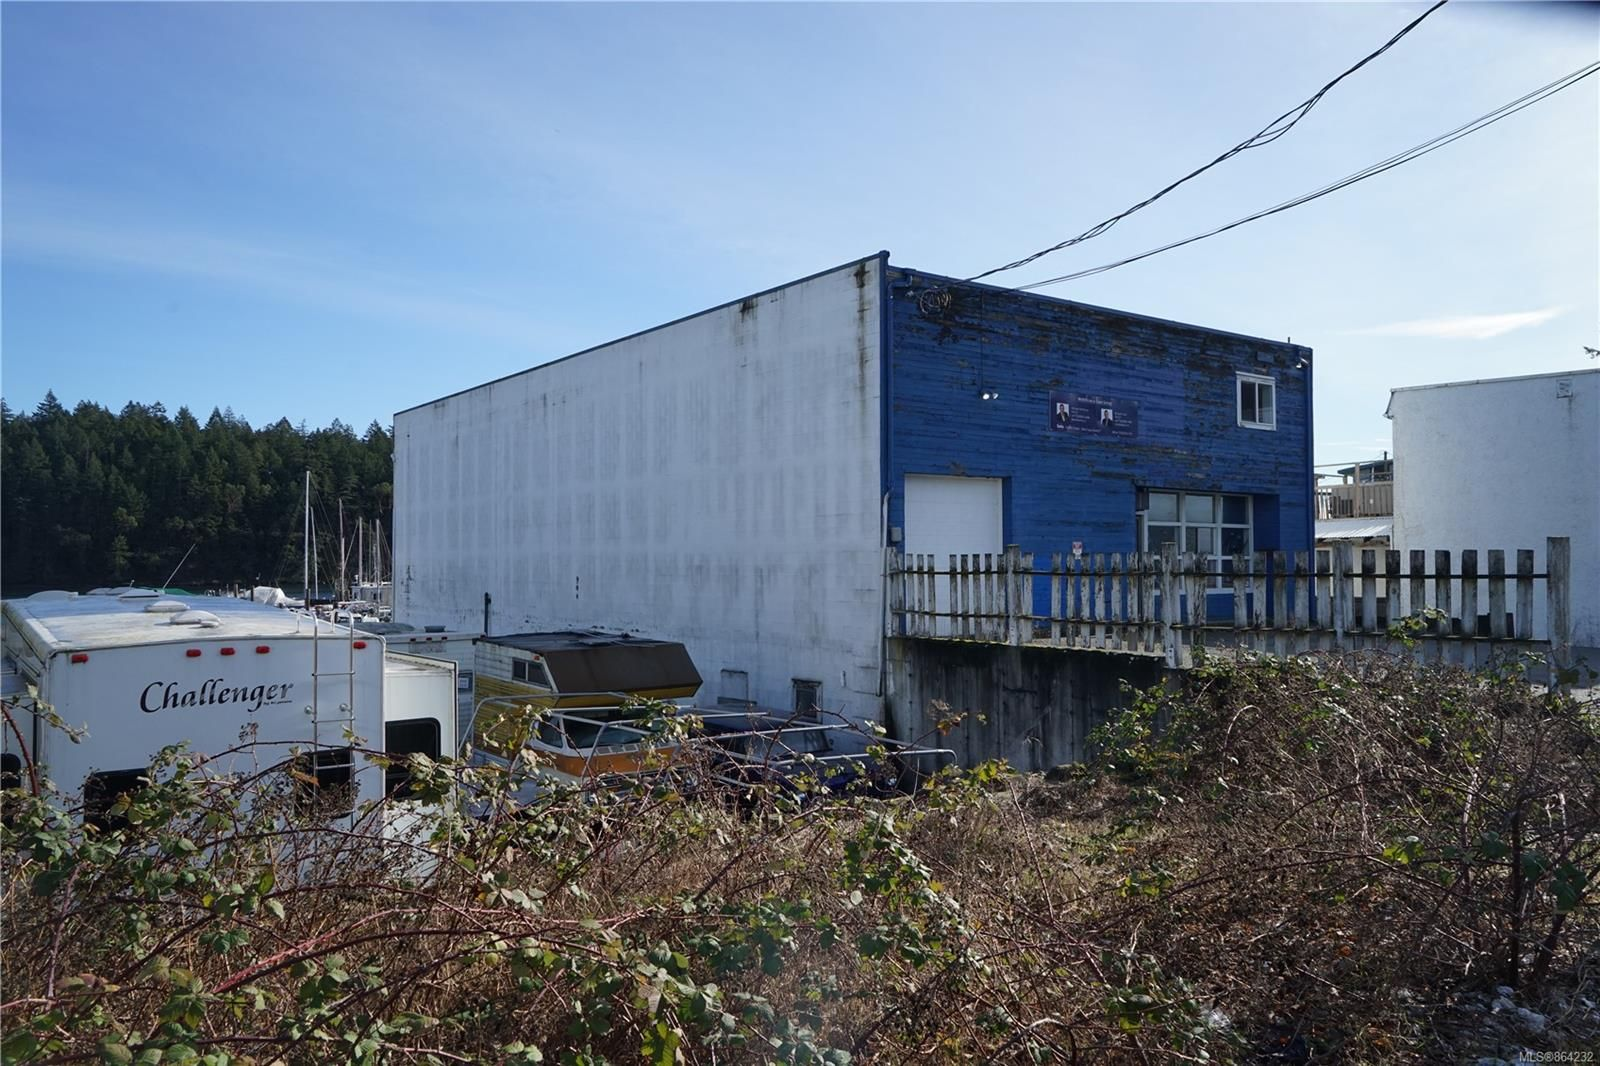 Photo 5: Photos: 1340-1370 Stewart Ave in : Na Brechin Hill Mixed Use for sale (Nanaimo)  : MLS®# 864232